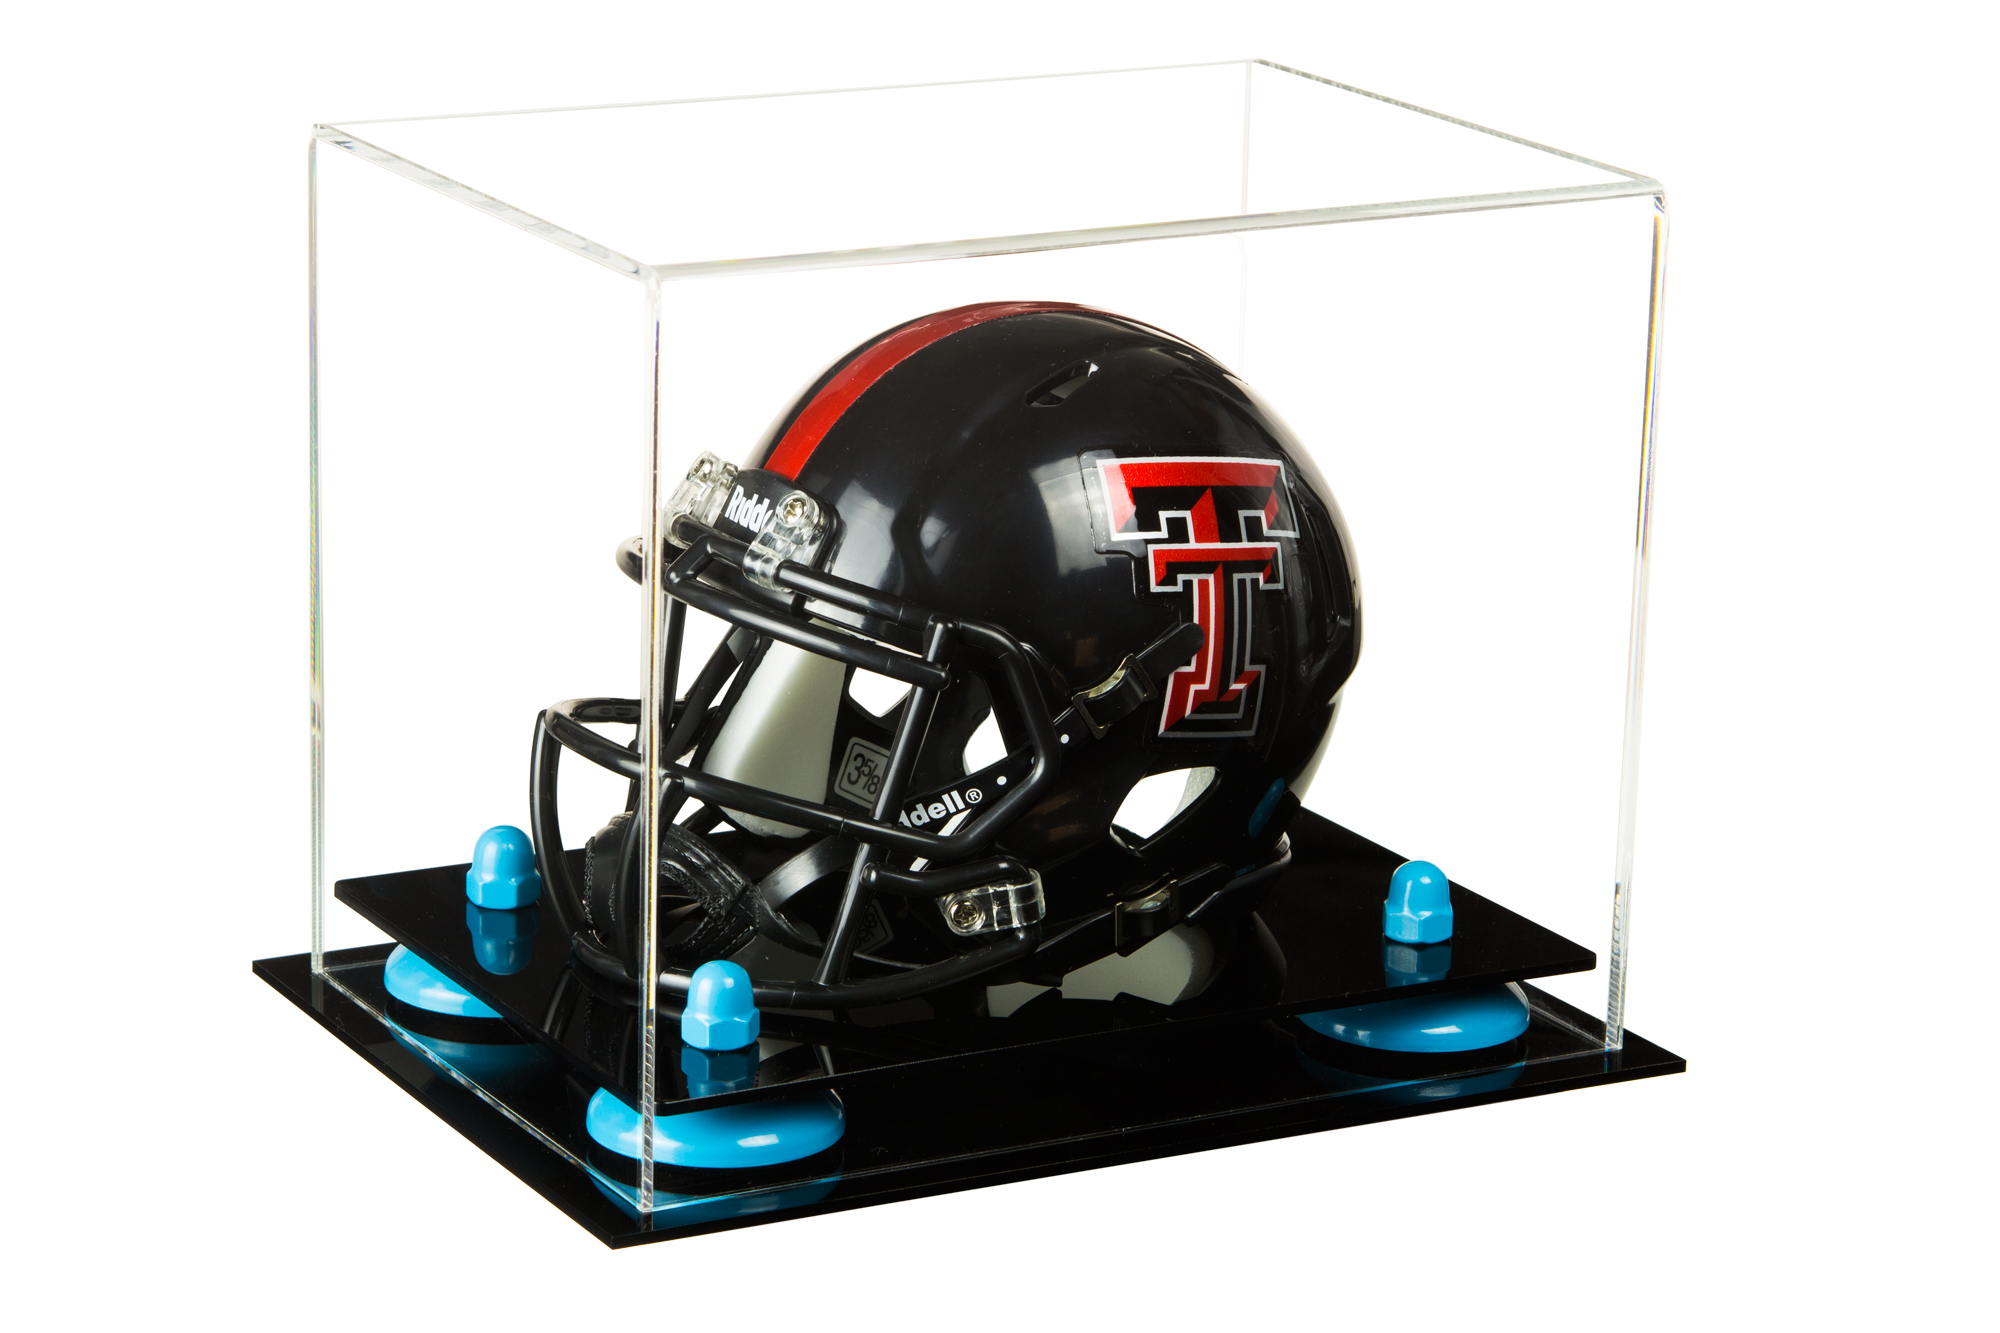 cfcc3b8ca1d Details about Clear Acrylic Mini Football Helmet Display Case with Blue  Risers (A003-BLR)